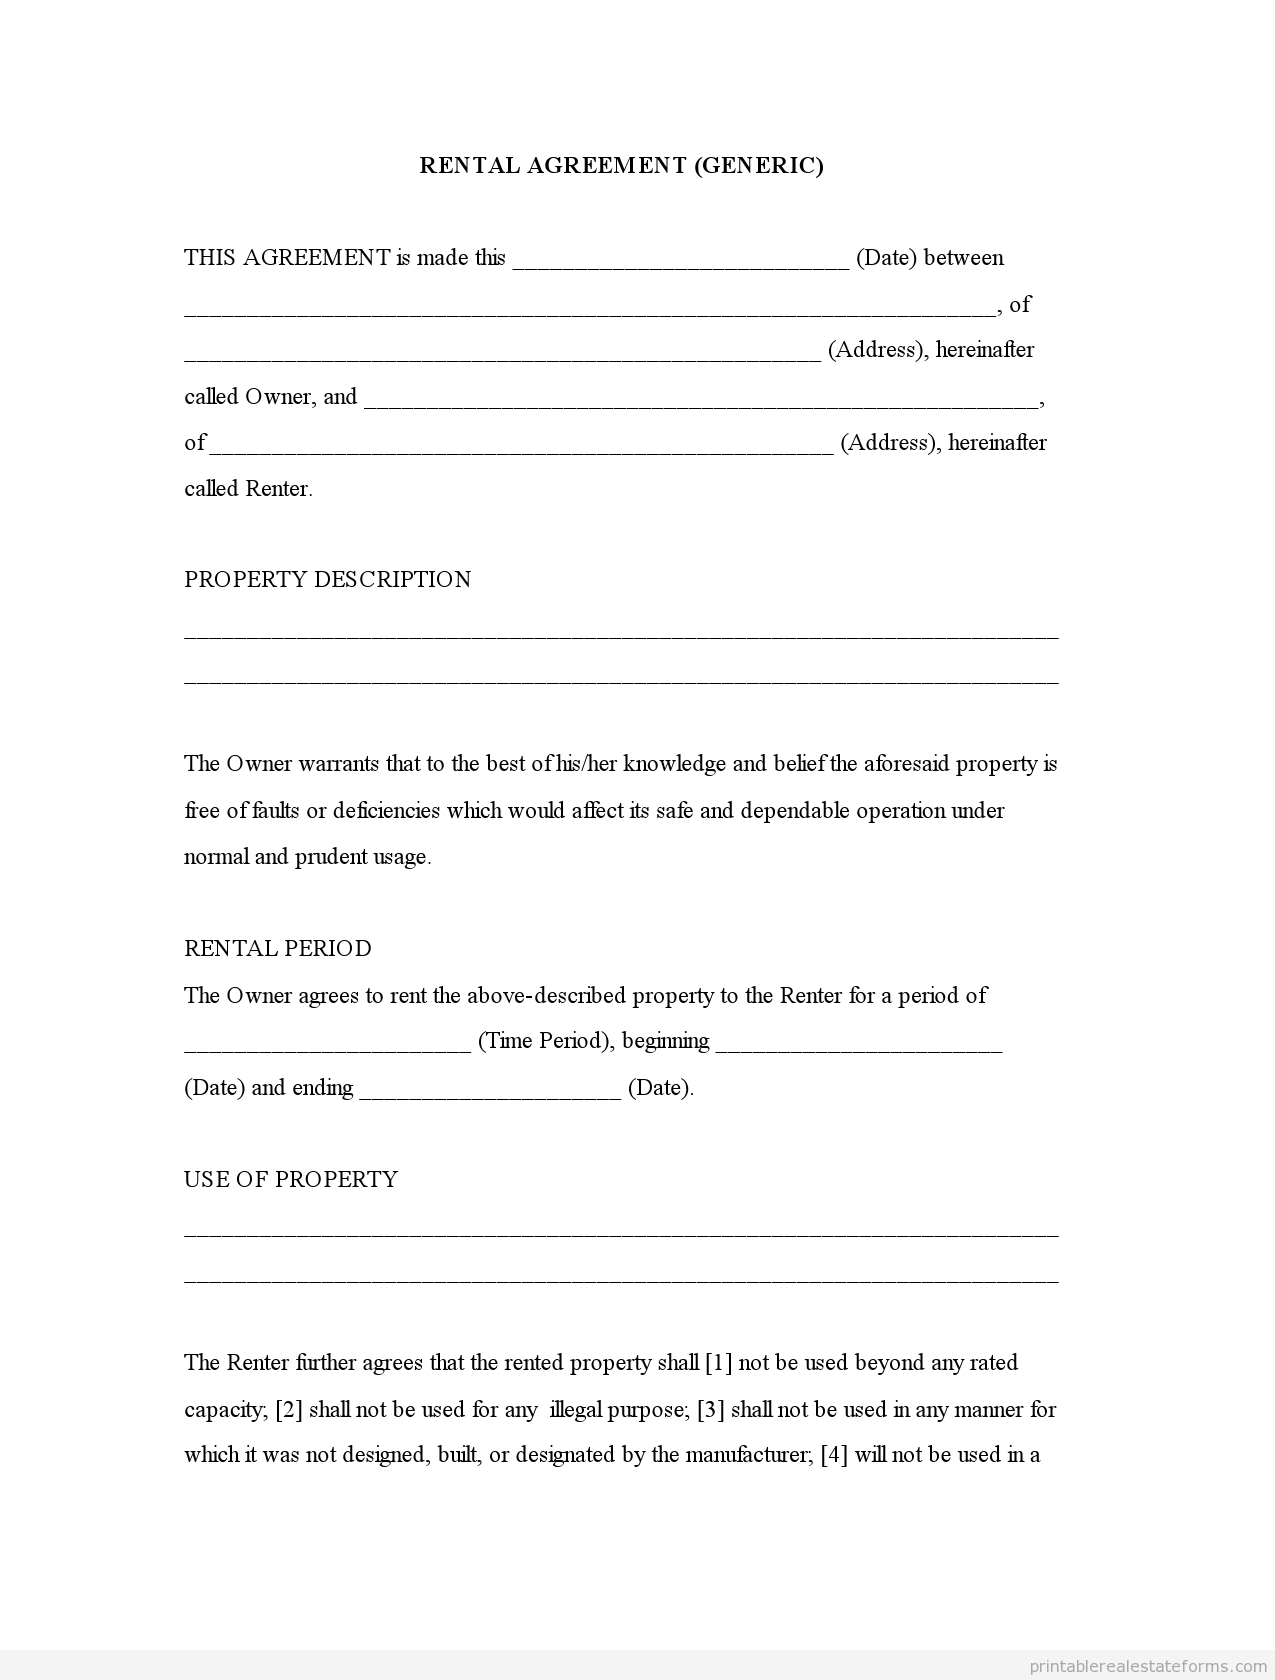 (GENERIC TEMPLATE) Rental Agreement Forms Free Printable  Lease Agreement Copy